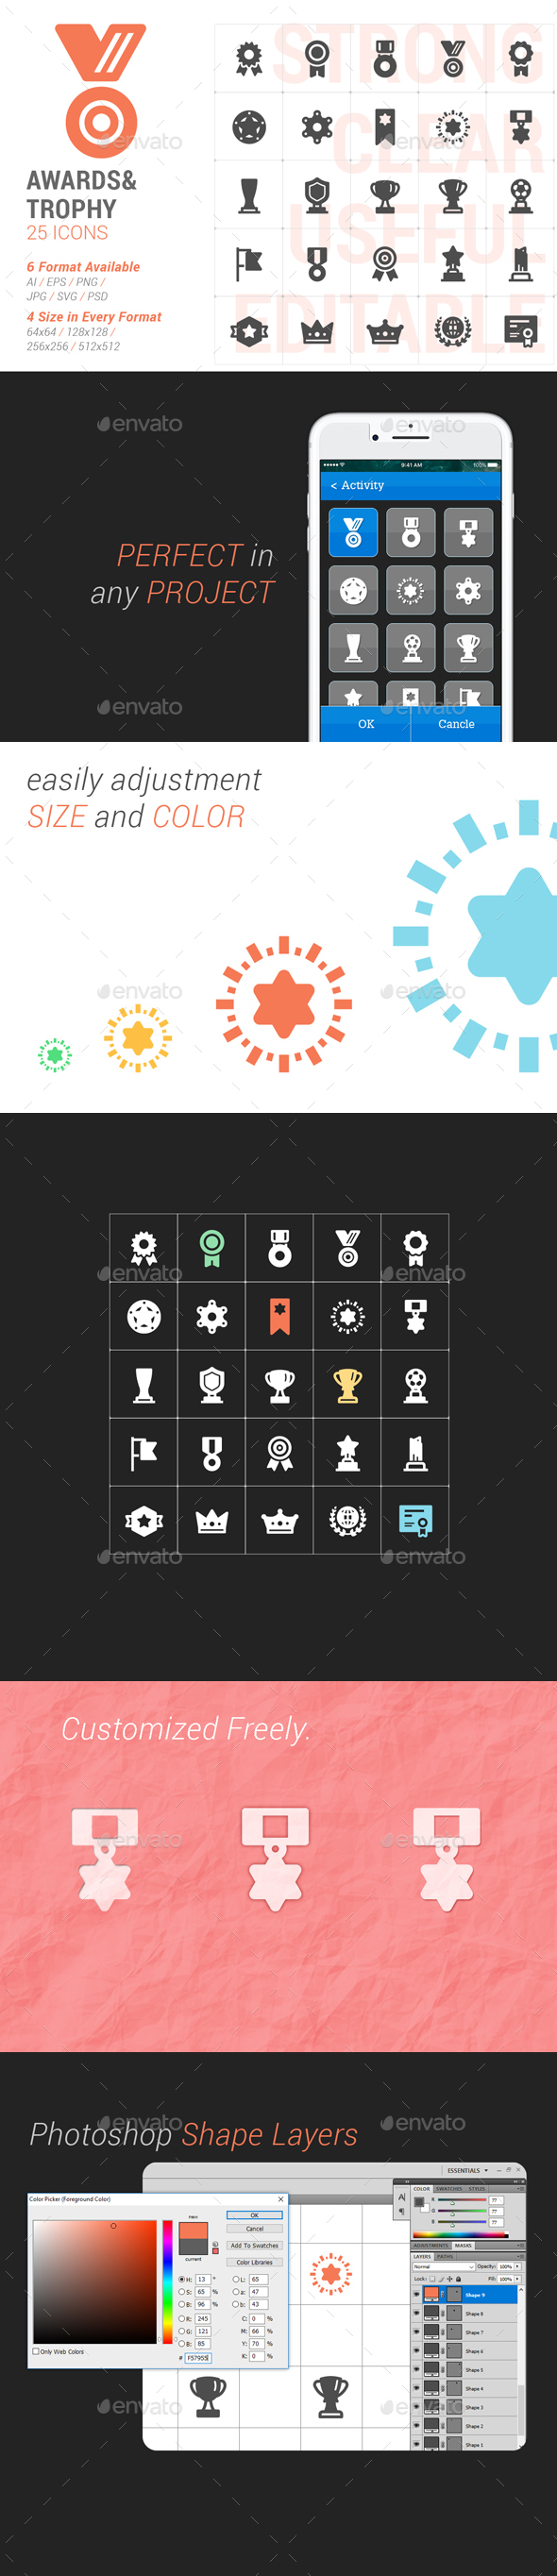 Awards & Trophy Part Filled Icon - Icons